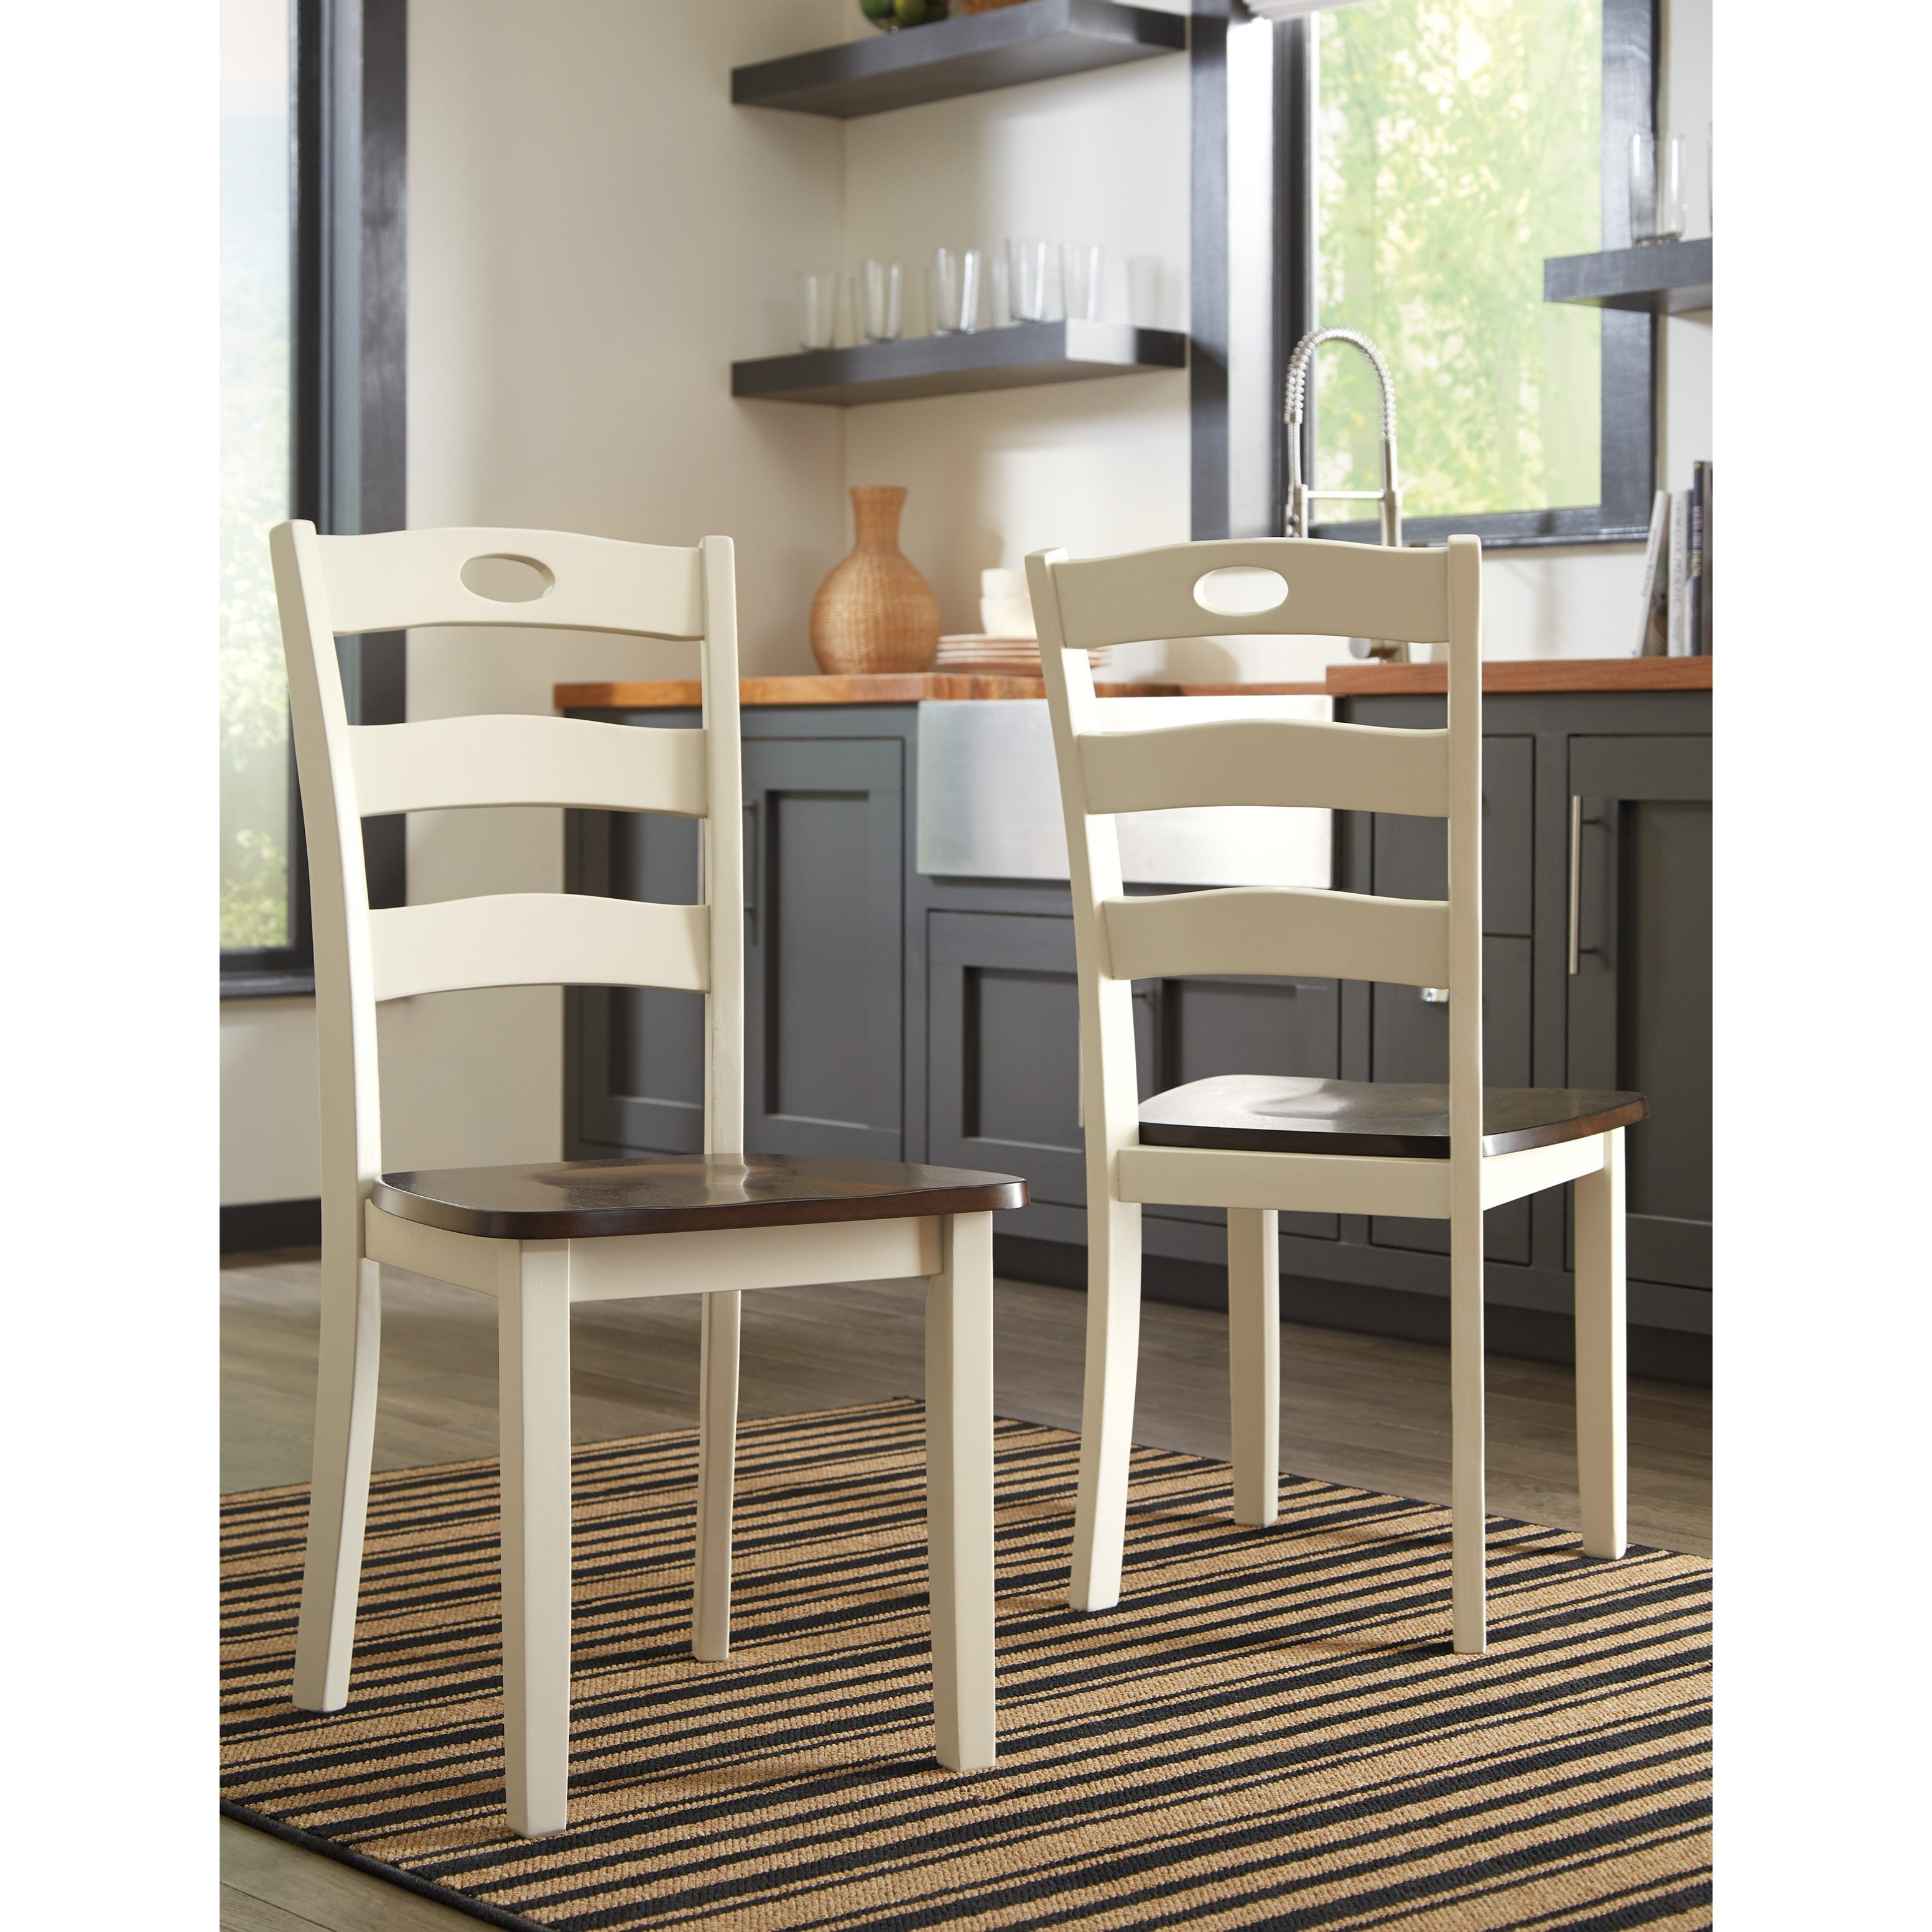 White Acres Two-Tone Finish 7-Piece Dining Room Table Set